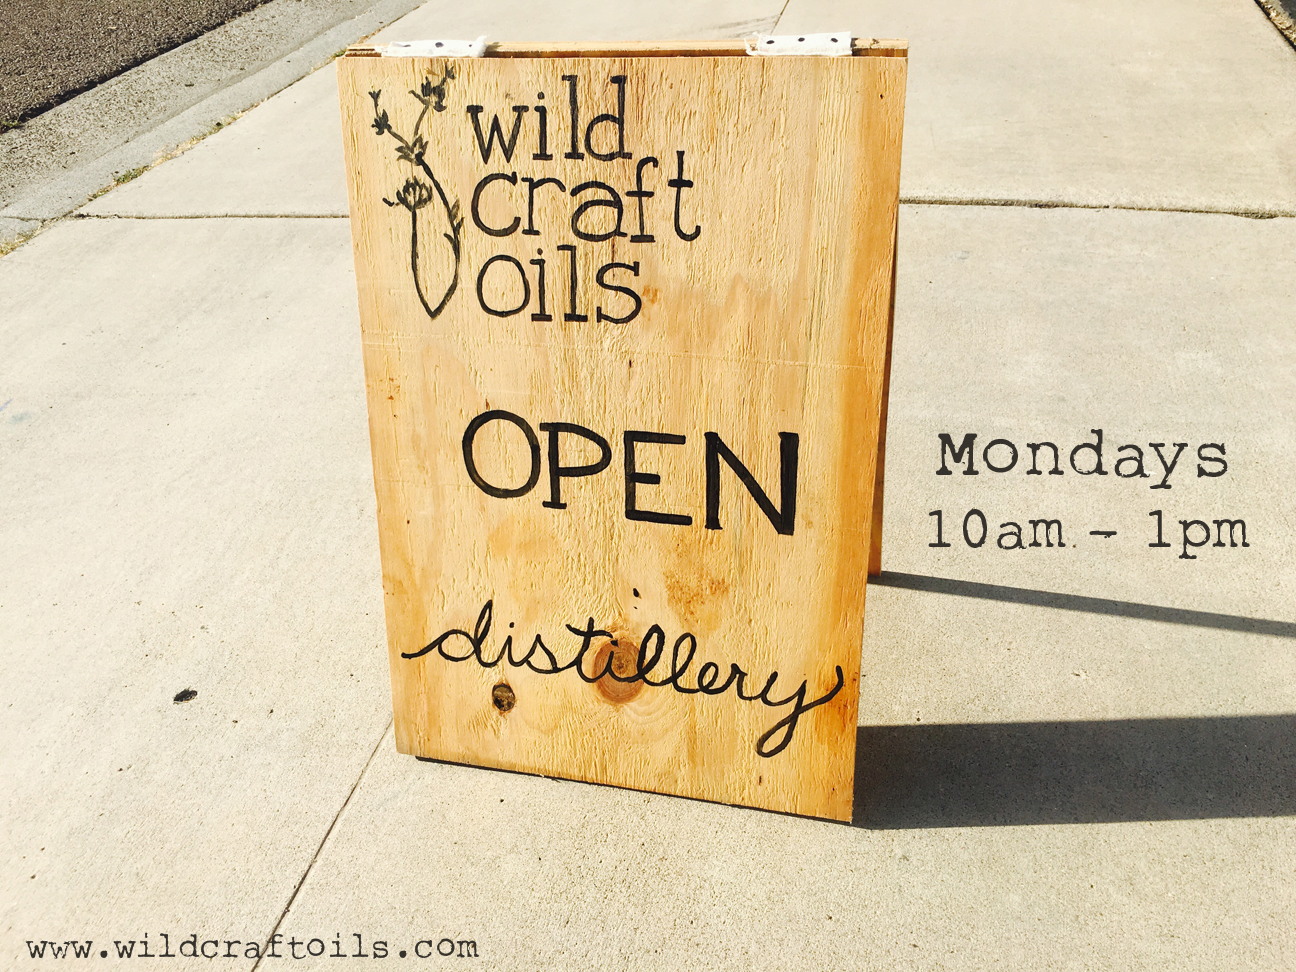 Wild Craft Oils | Encinitas, Ca.